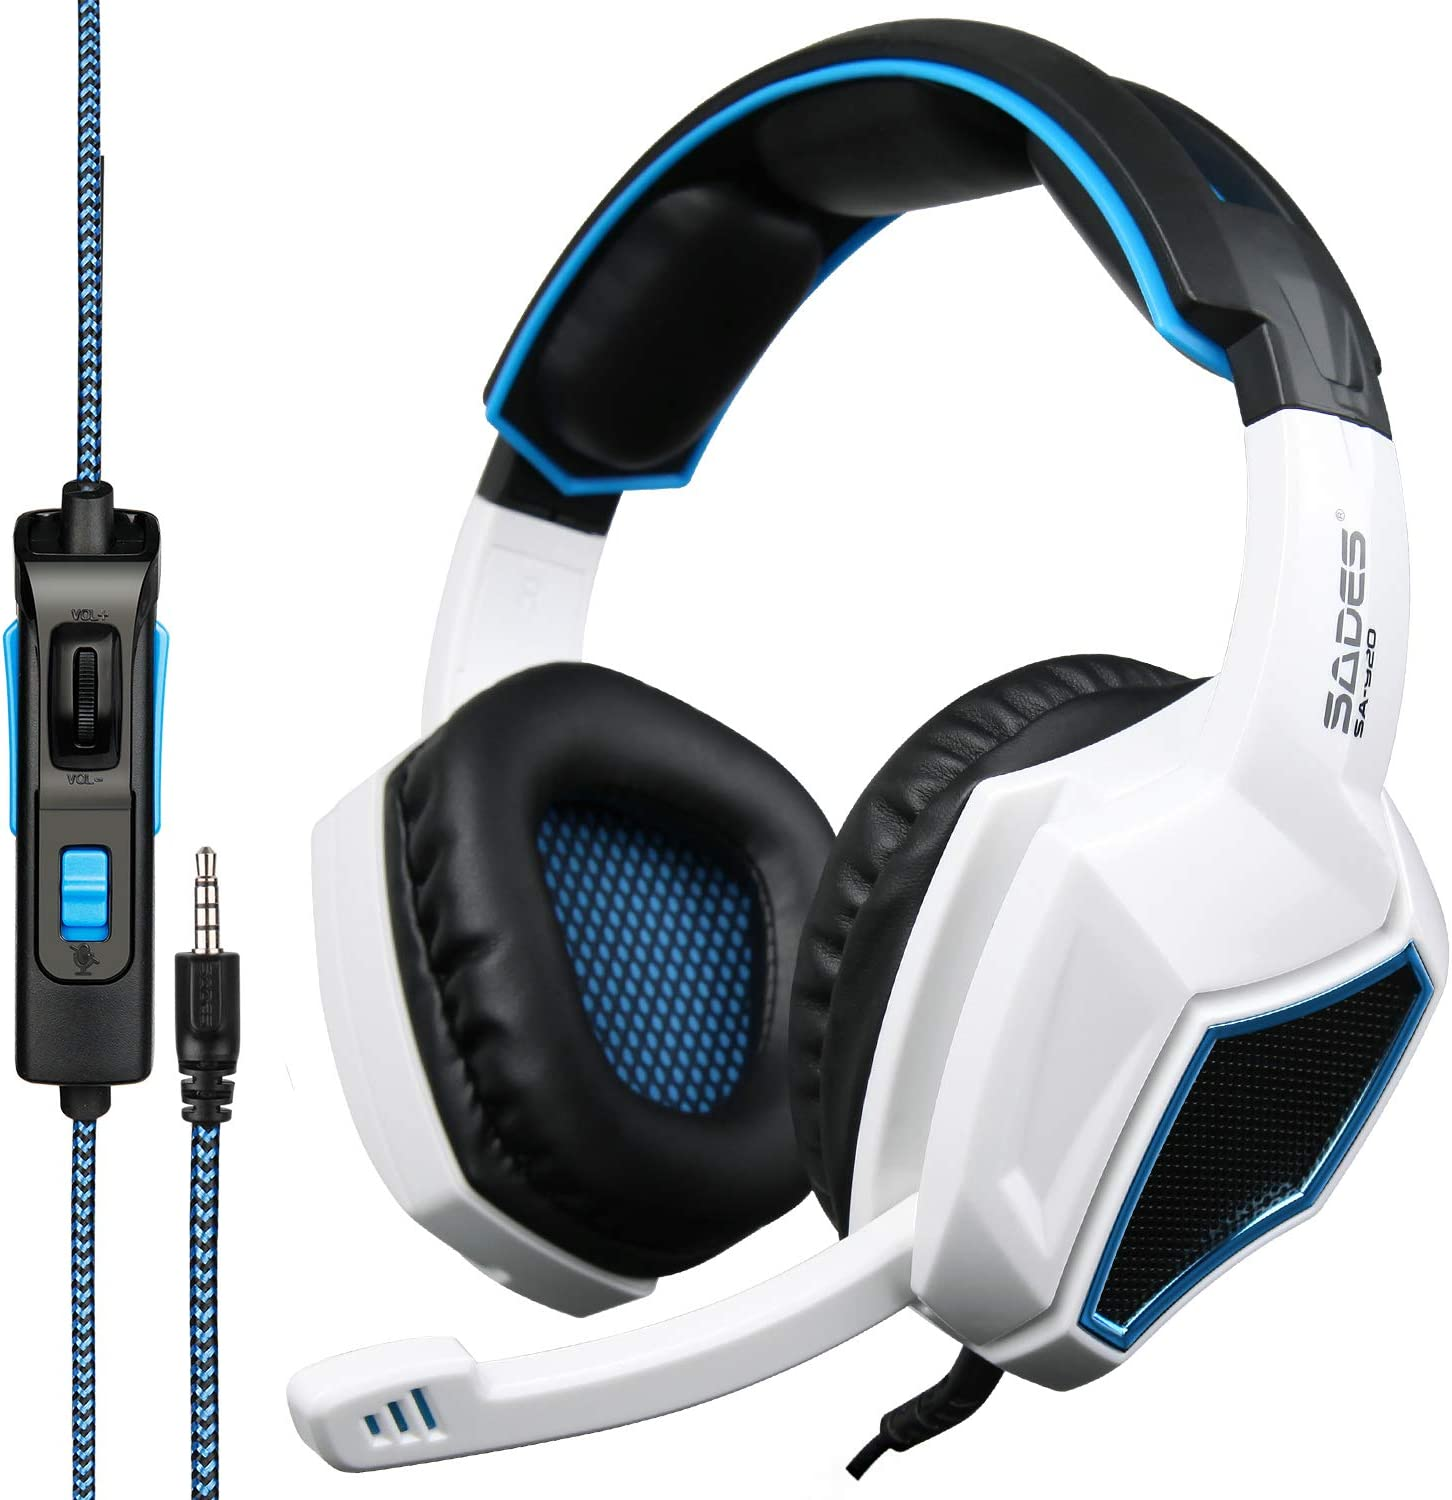 Sades SA920 3.5mm Wired Award Stereo Gaming with Over Ear Micr Headset cheap